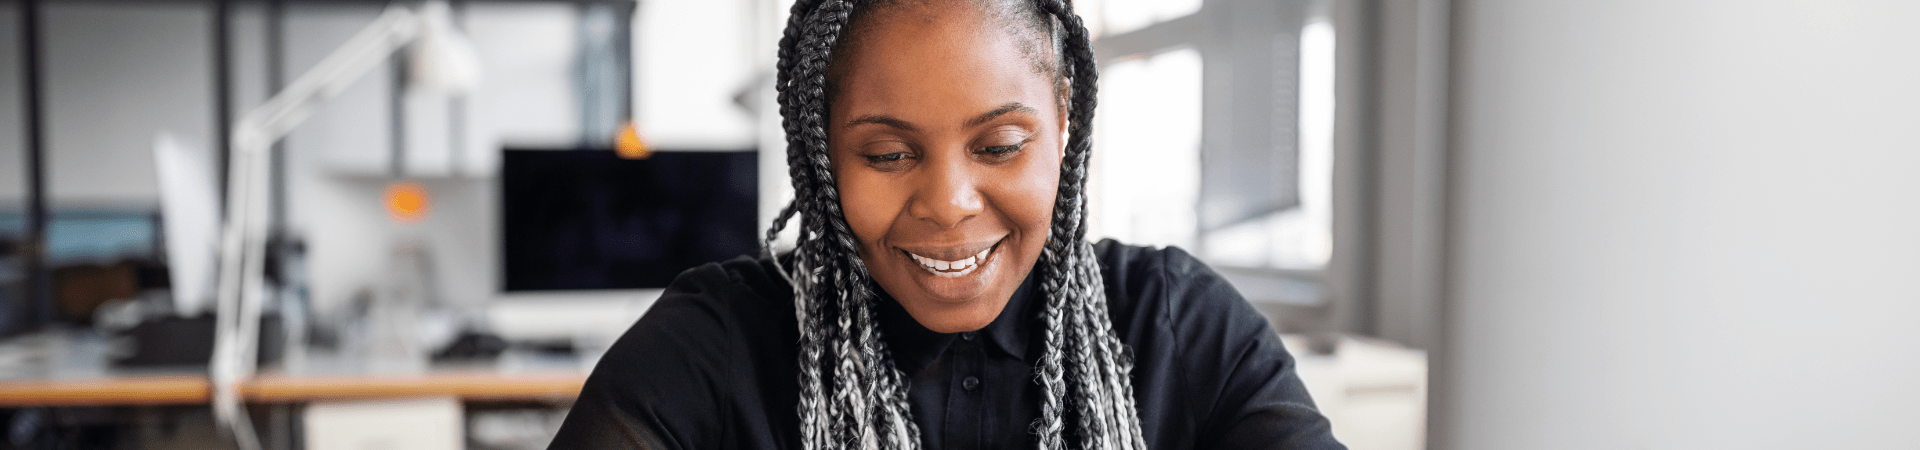 African lady with grey hair smiling